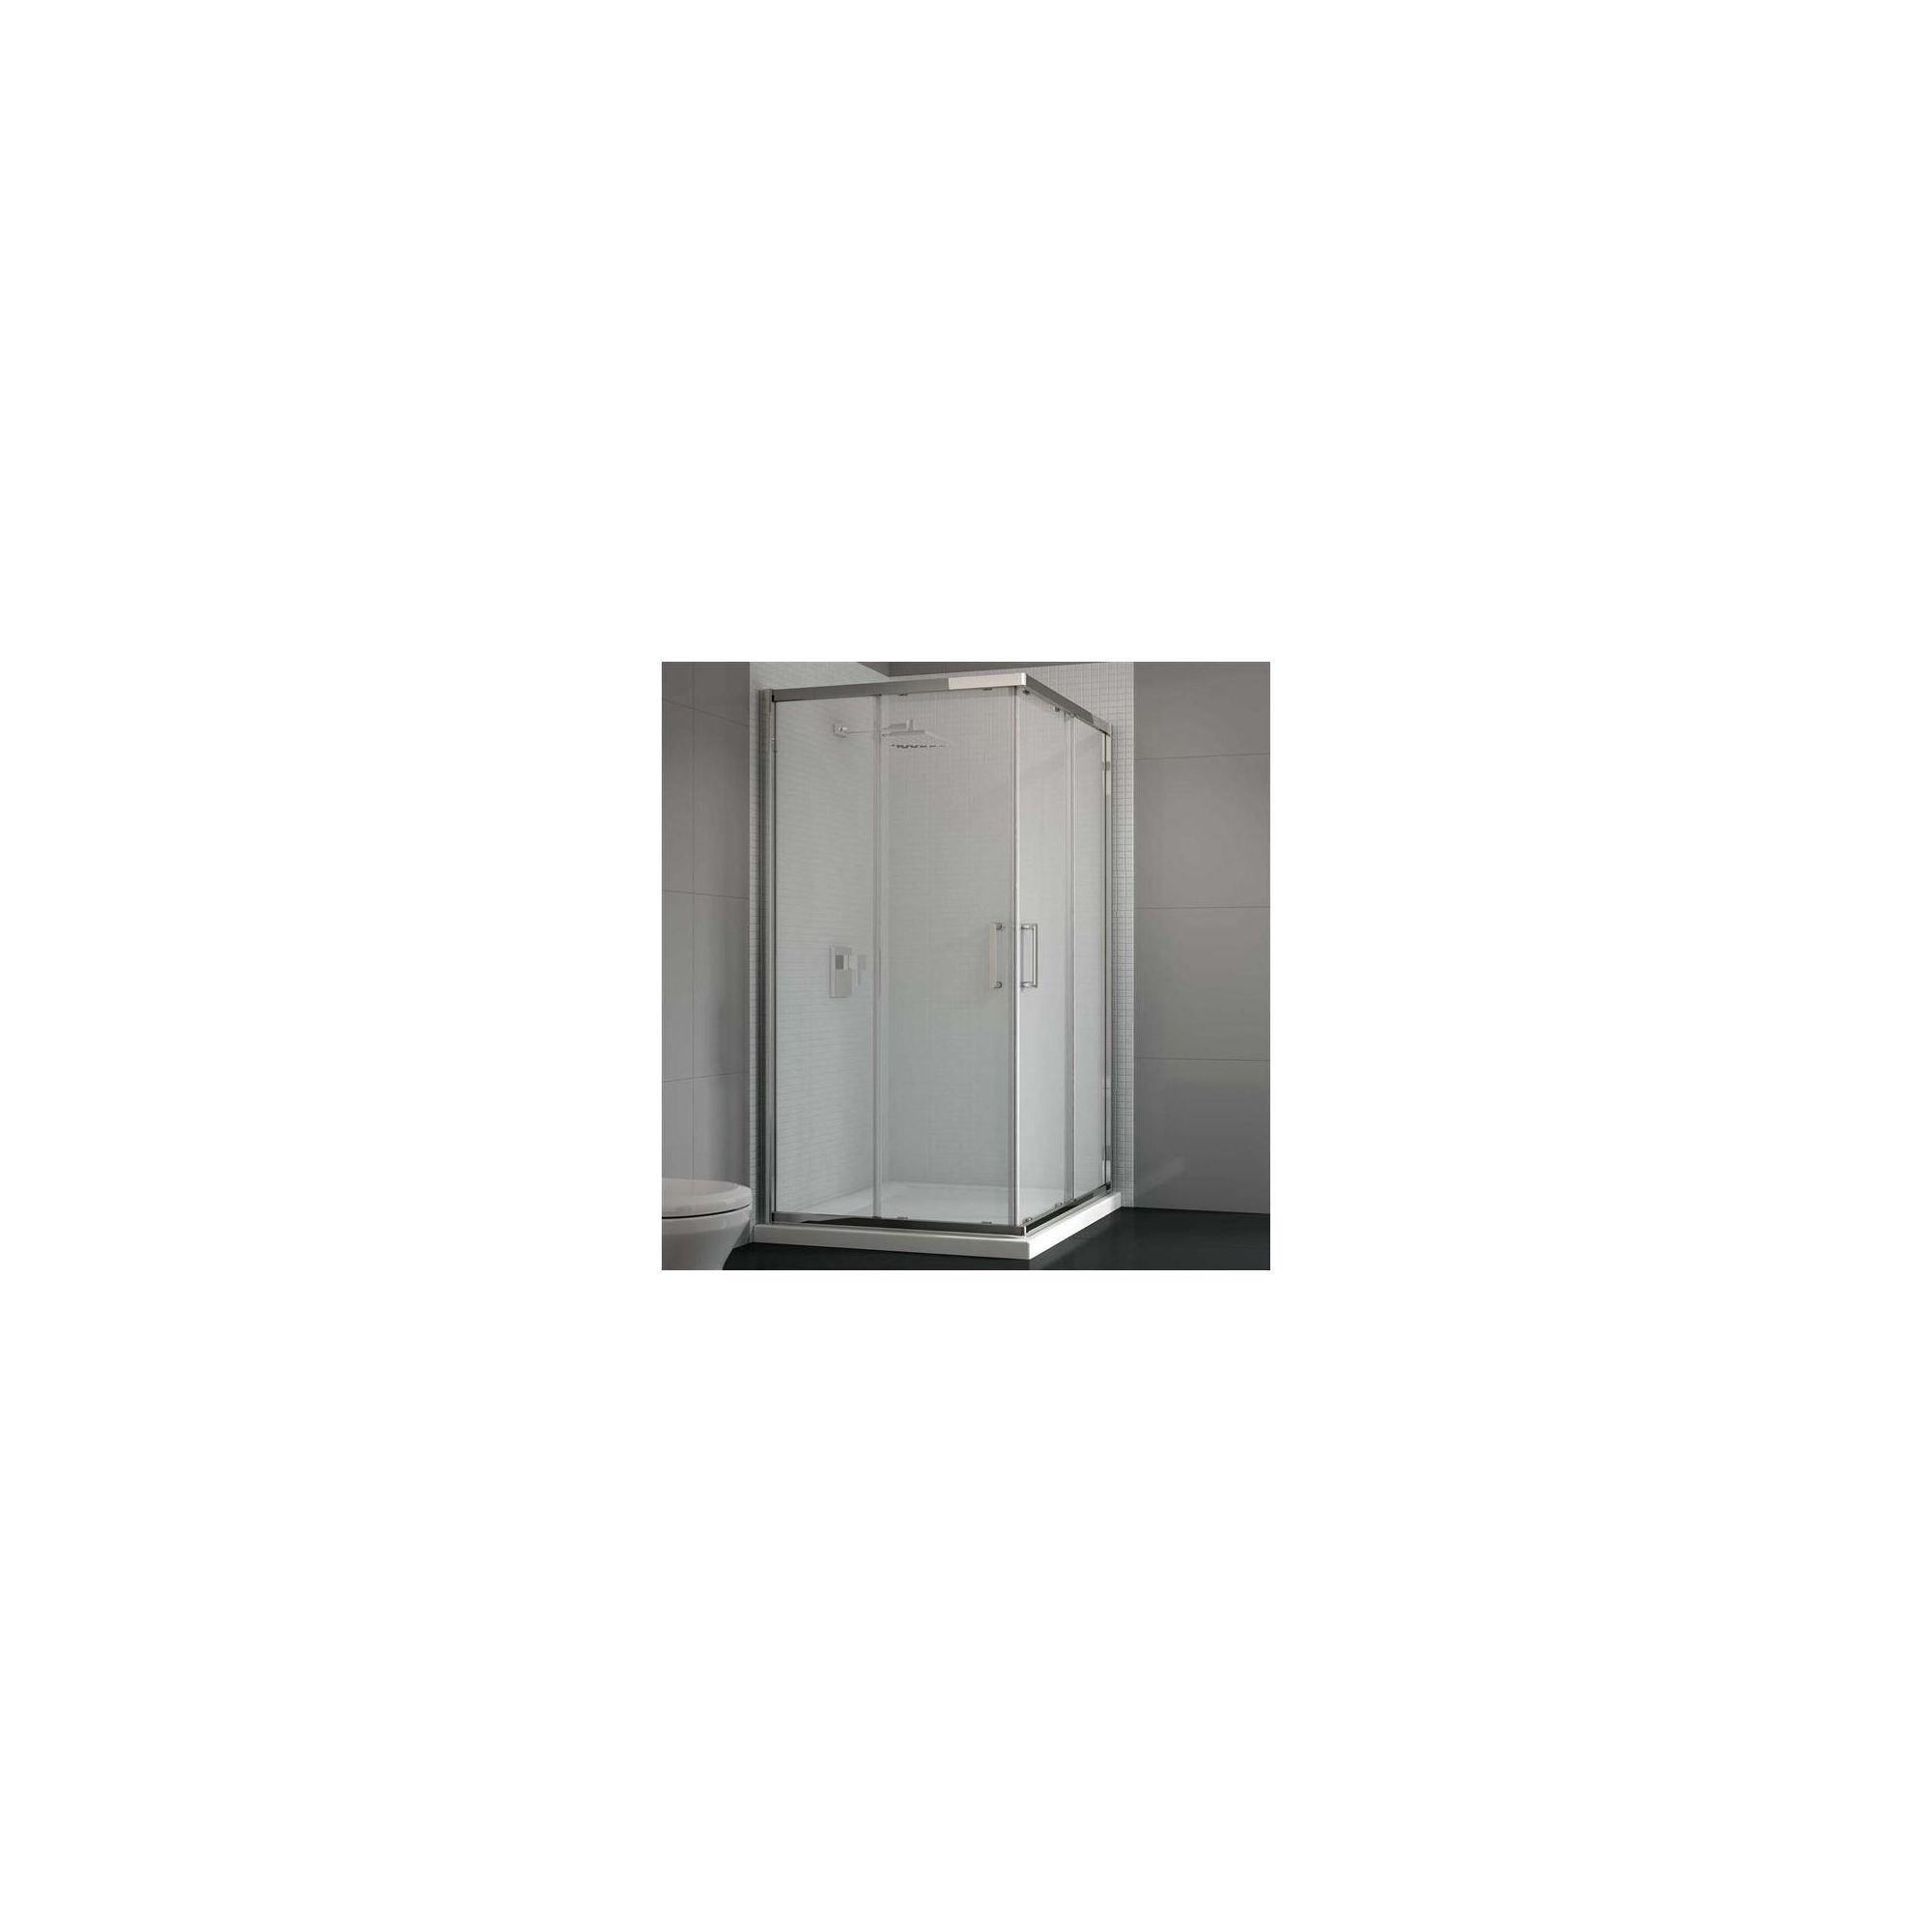 Merlyn Vivid Six Corner Entry Shower Enclosure, 800mm x 800mm, Low Profile Tray, 6mm Glass at Tesco Direct